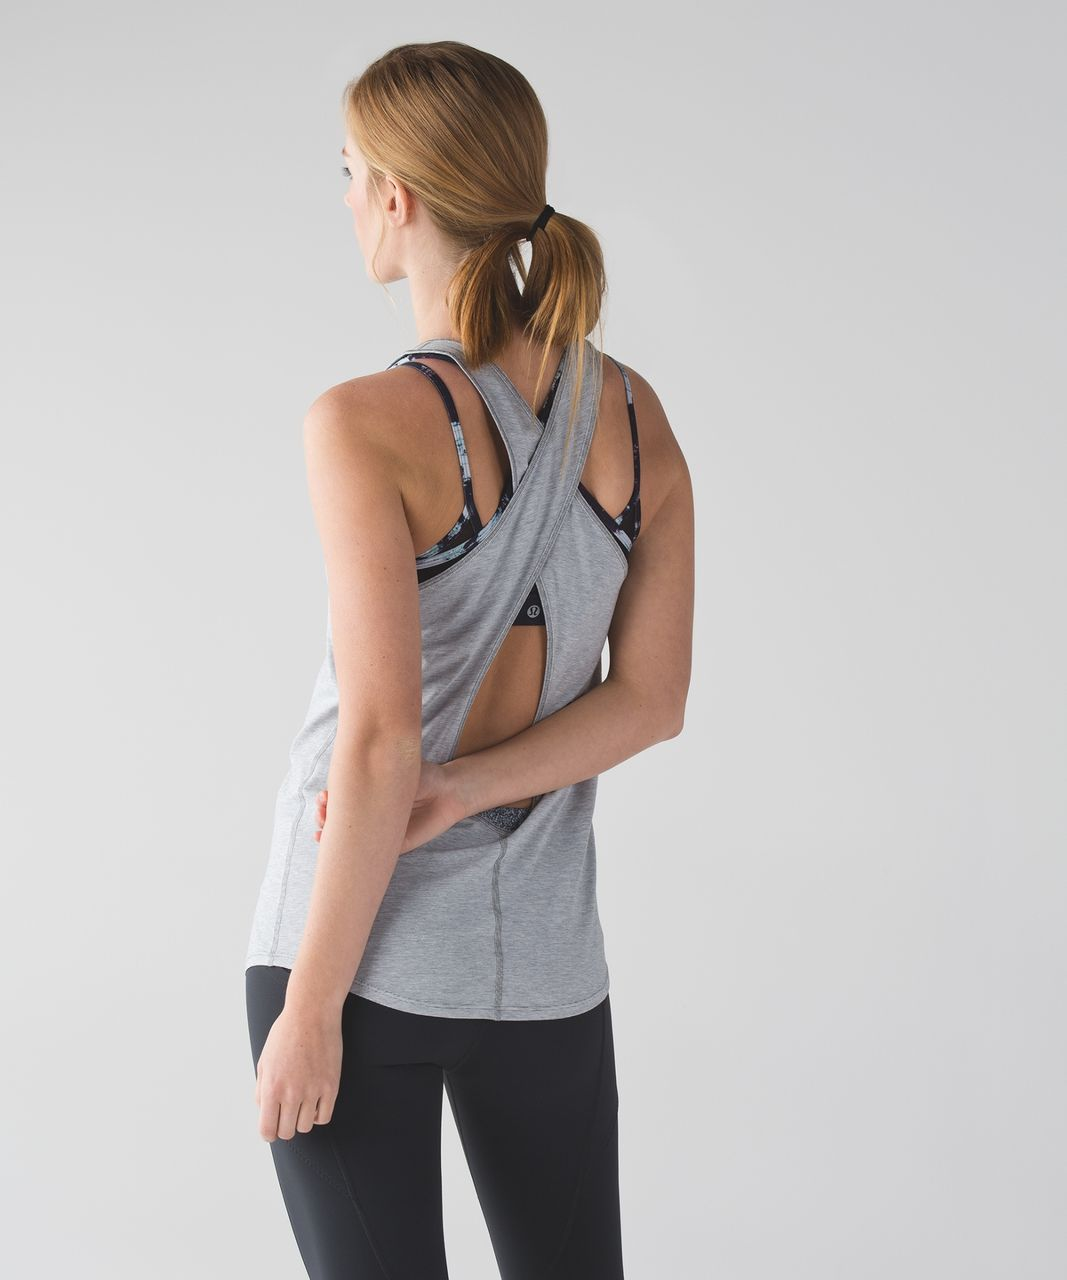 Lululemon Physically Fit Tank - Wee Stripe White Heathered Medium Grey